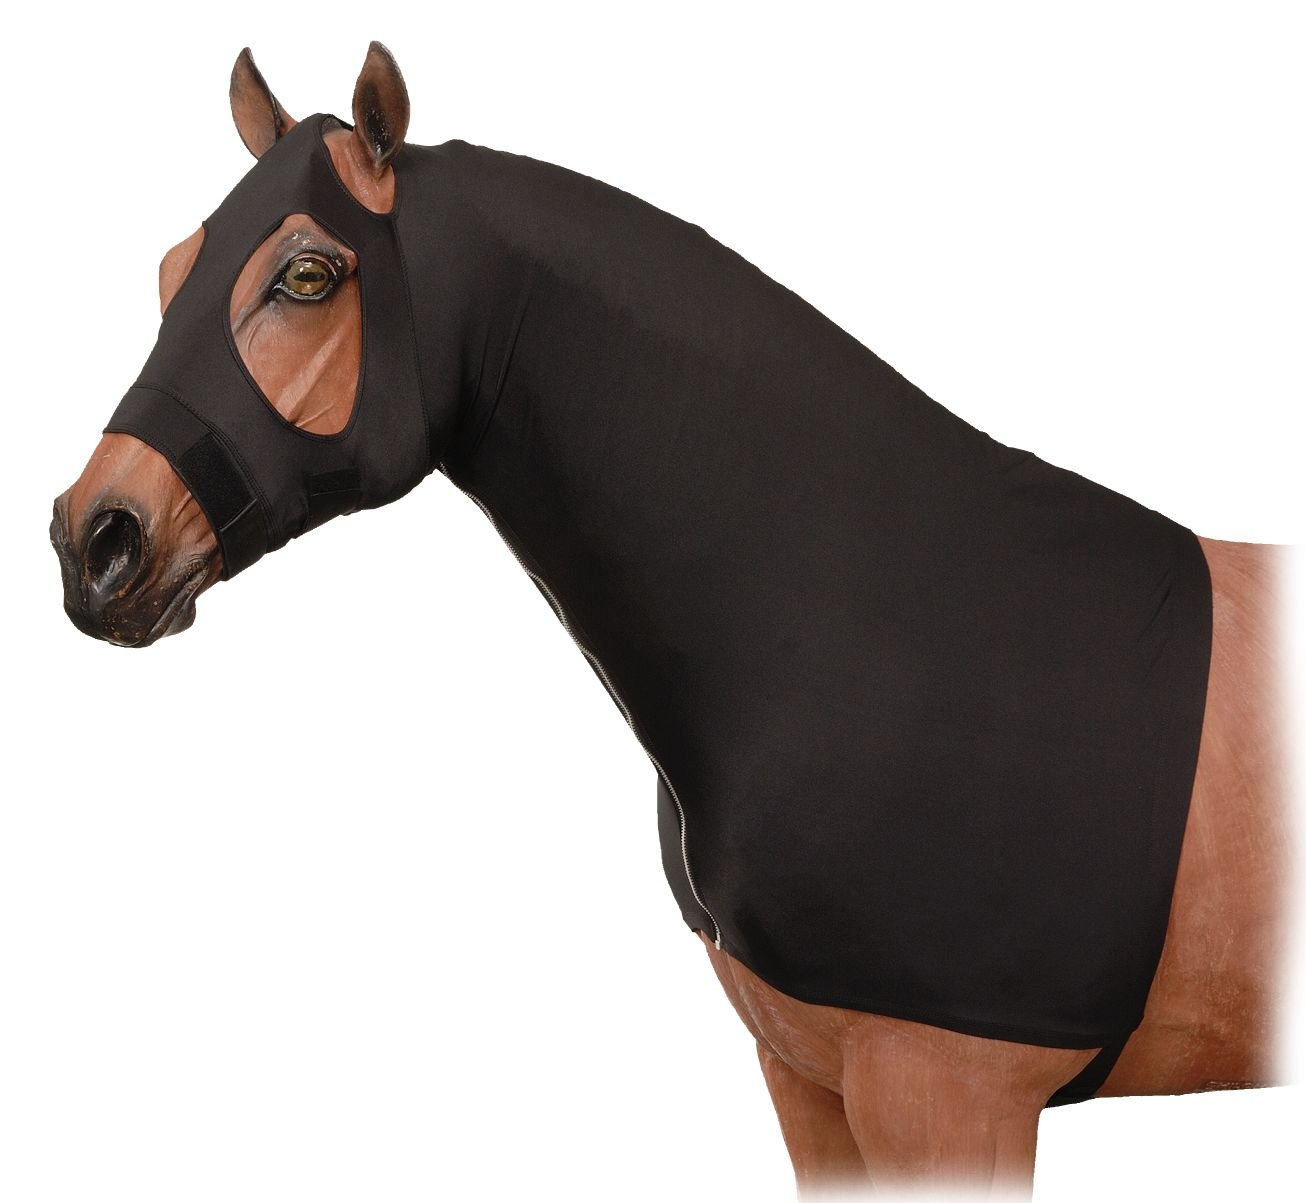 Tough 1 Spandex Mane Stay Hood with Full Zipper, Black, Large